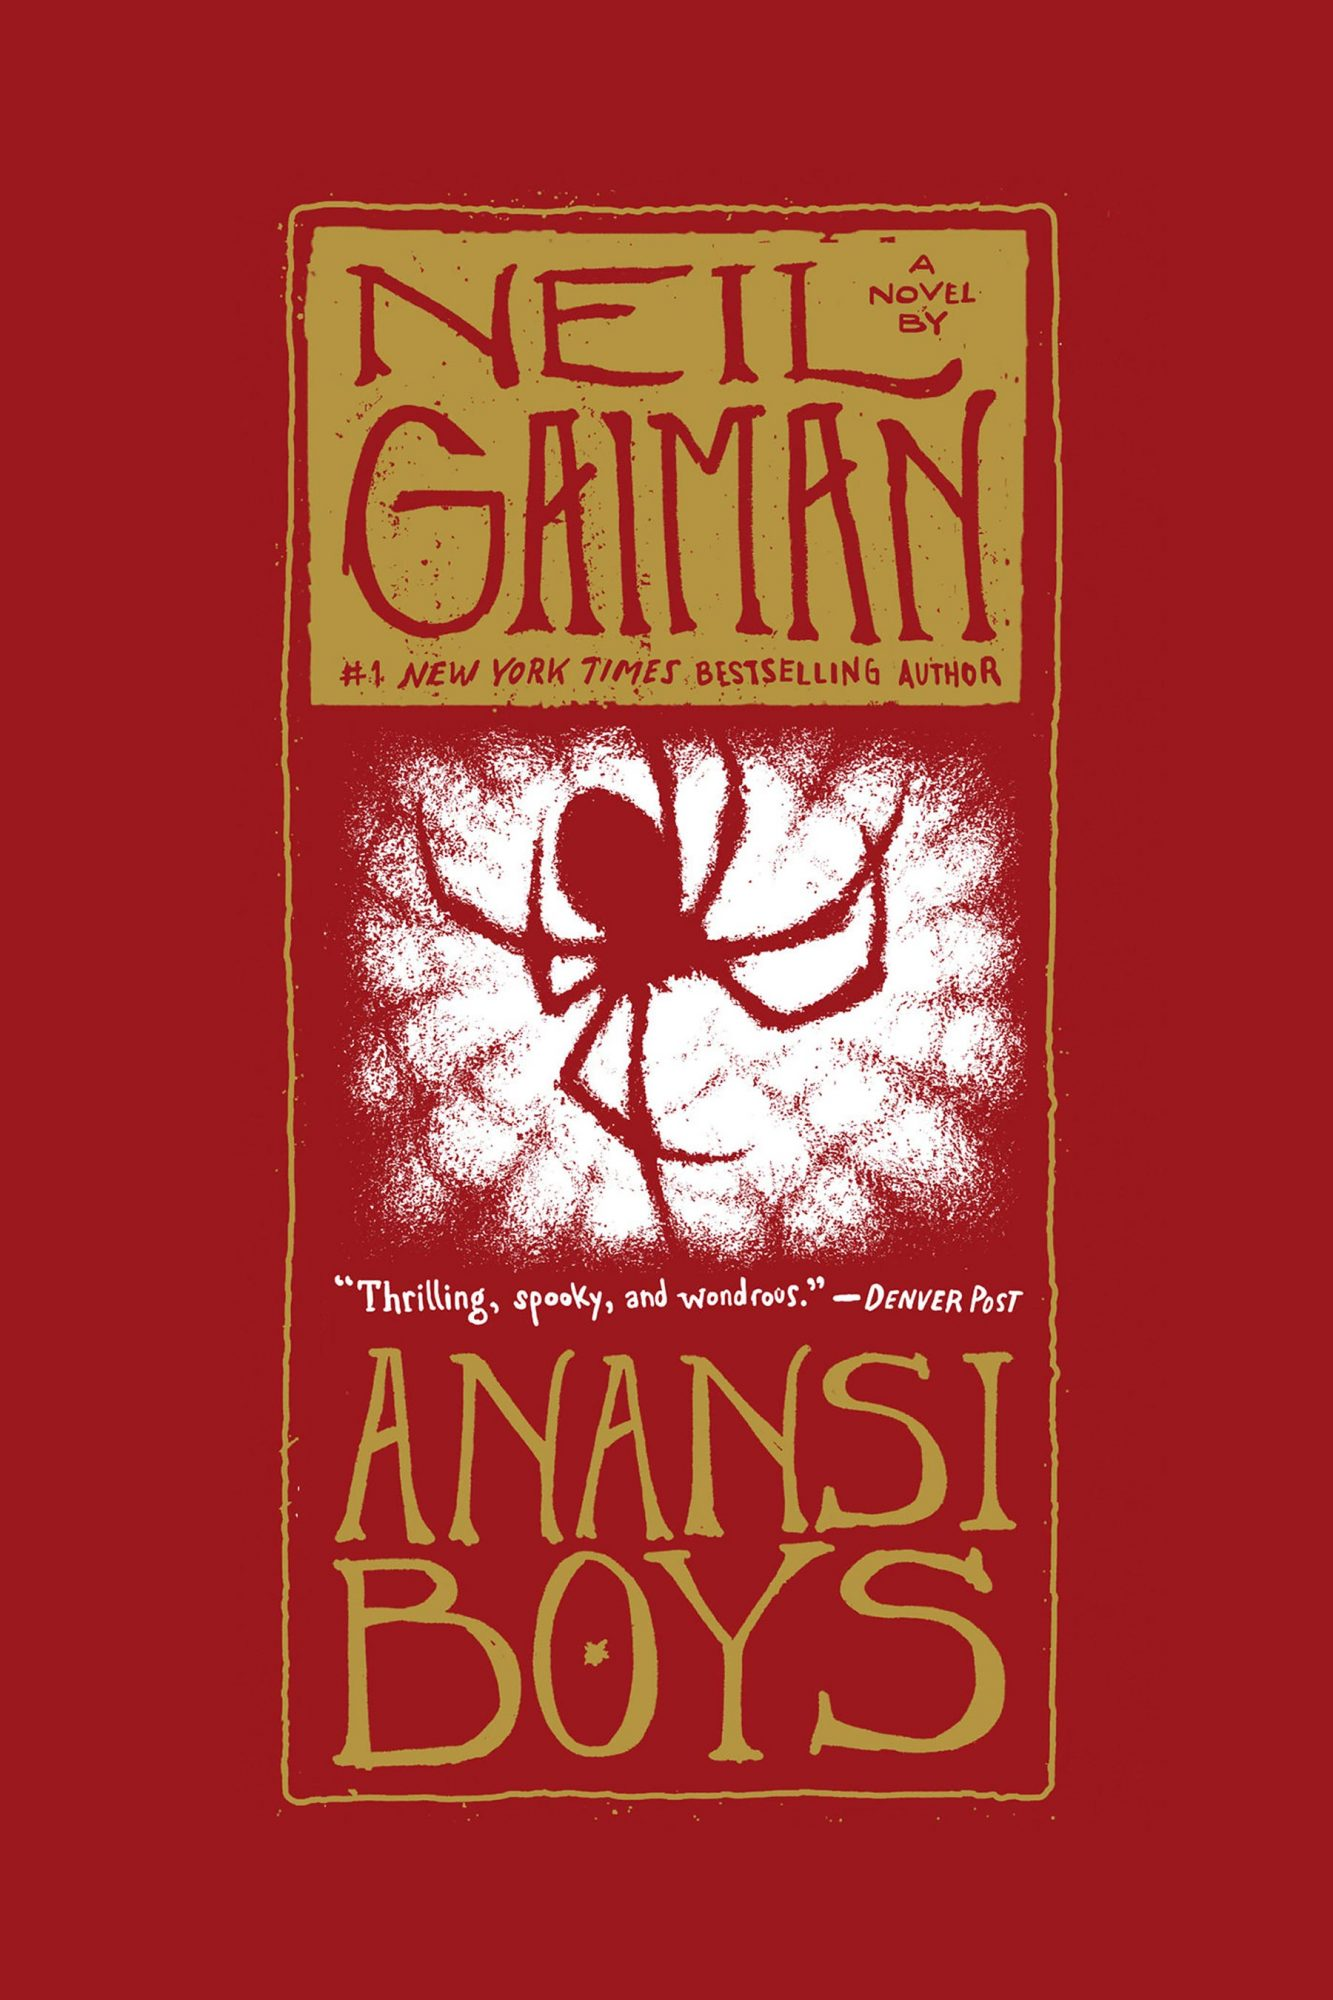 Anansi Boys by Neil Gaiman CR: HarperCollins Publishers